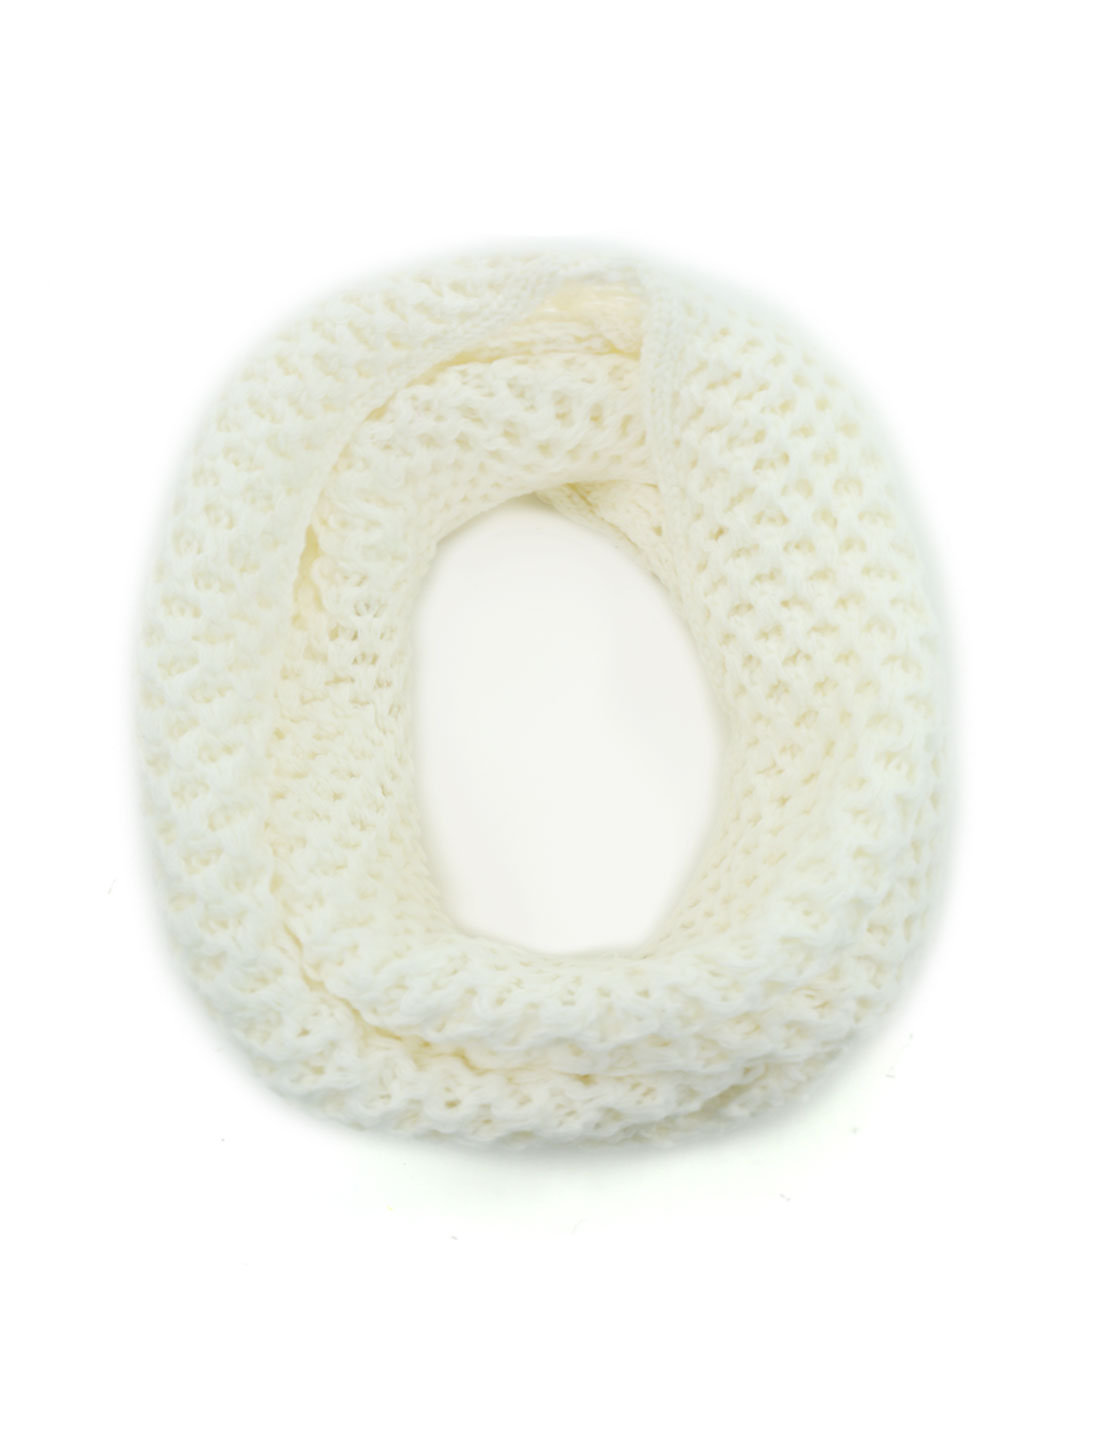 Unisex Winter Wearing Hollow Out Knitted Circle Scarf White